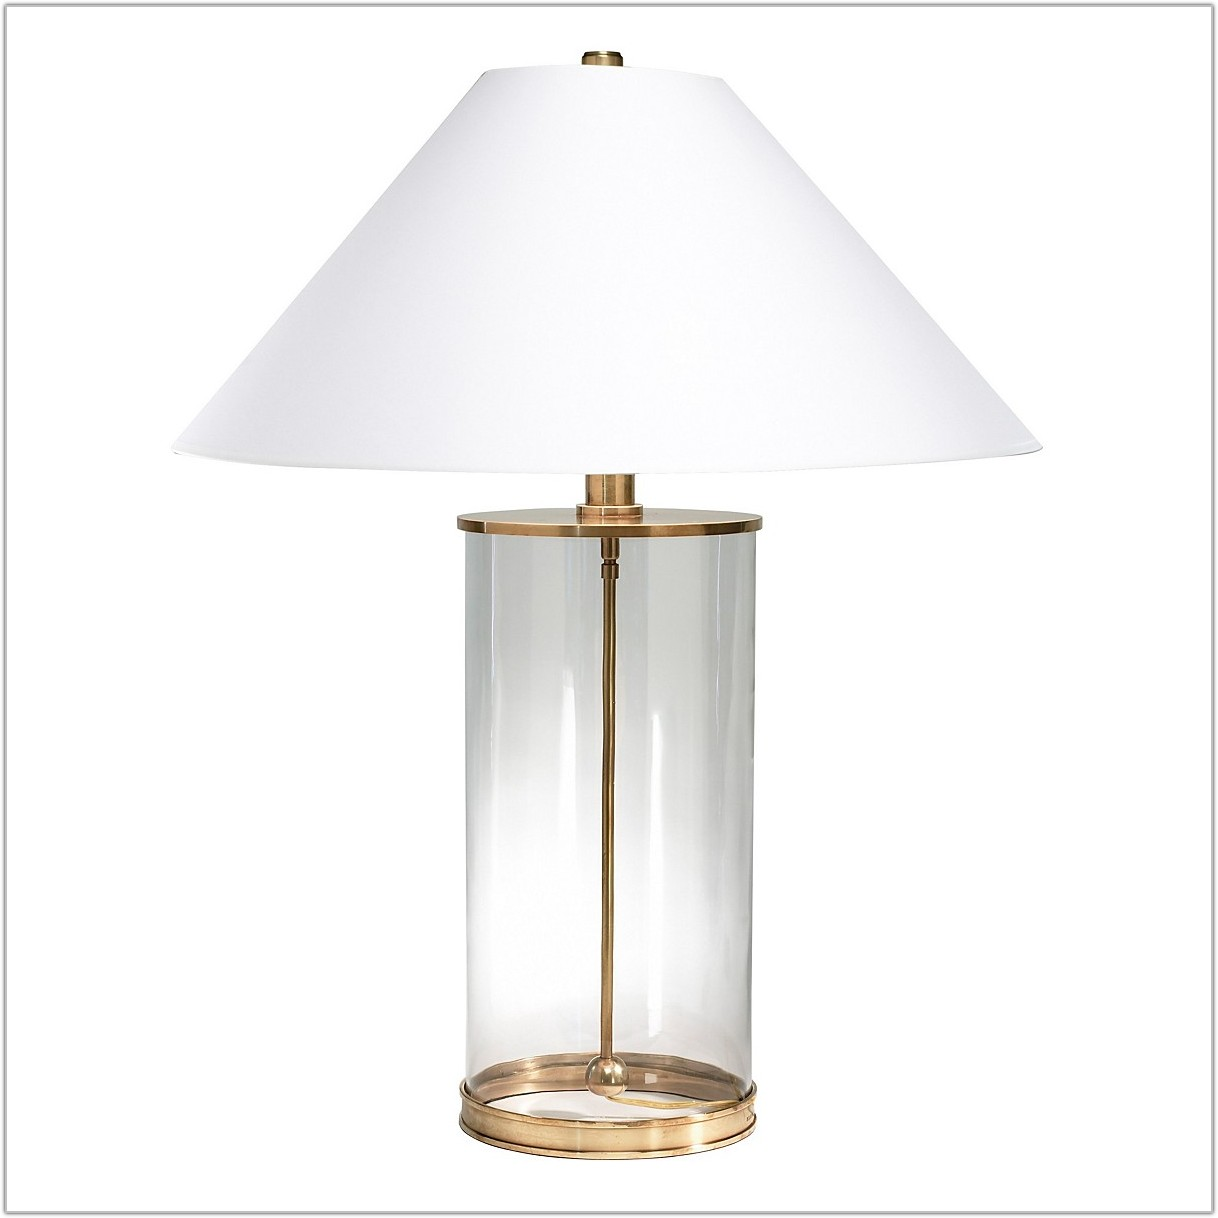 66446c1a39be Ralph Lauren Glass Cylinder Table Lamp - Lamps : Home Decorating ...